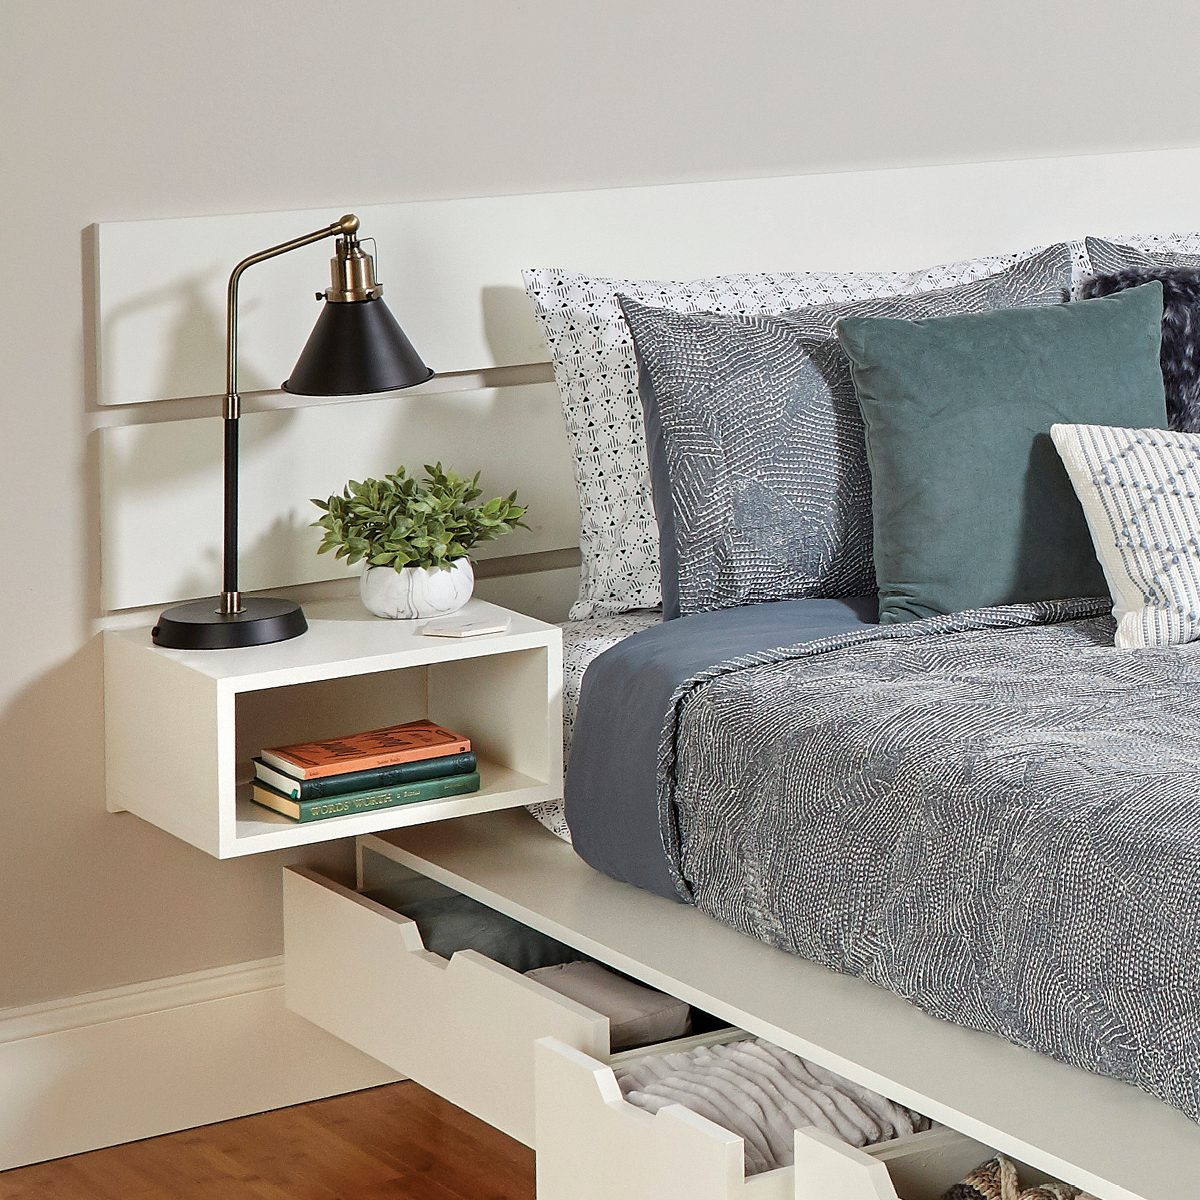 headboard and nightstand combination Fh21mar 608 52 103 Hb